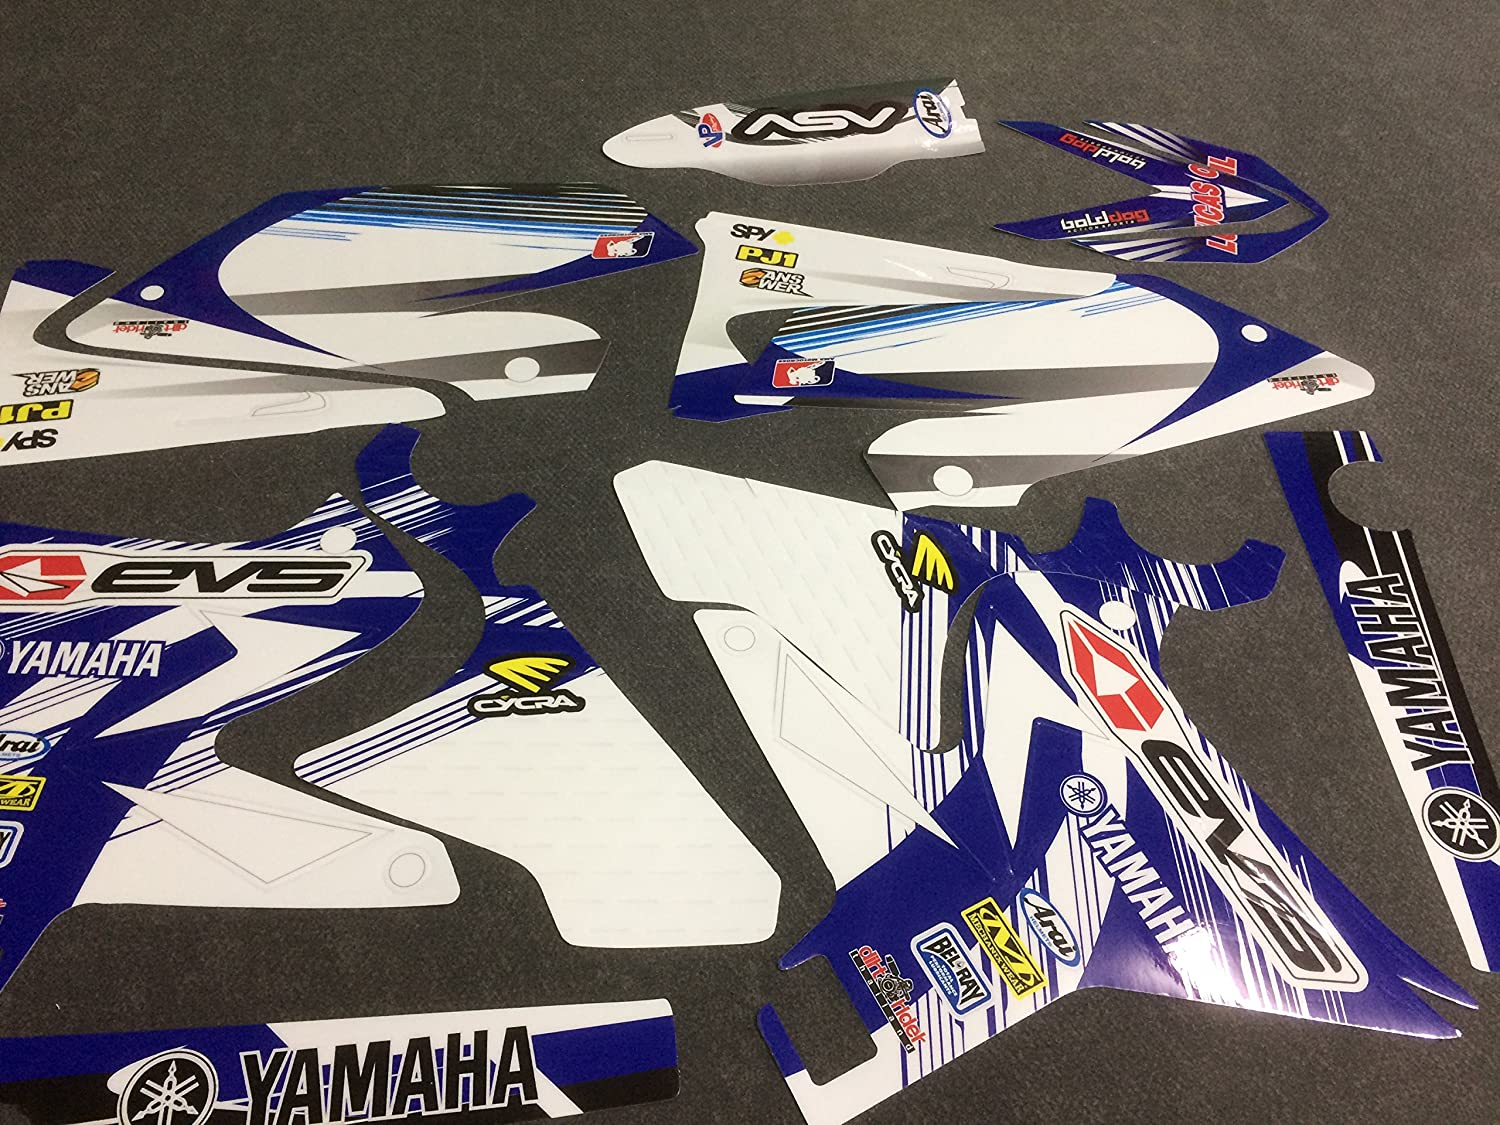 N 283 YAMAHA UFO RESTYLE YZ 125-250 96-14 DECALS STICKERS GRAPHICS KIT